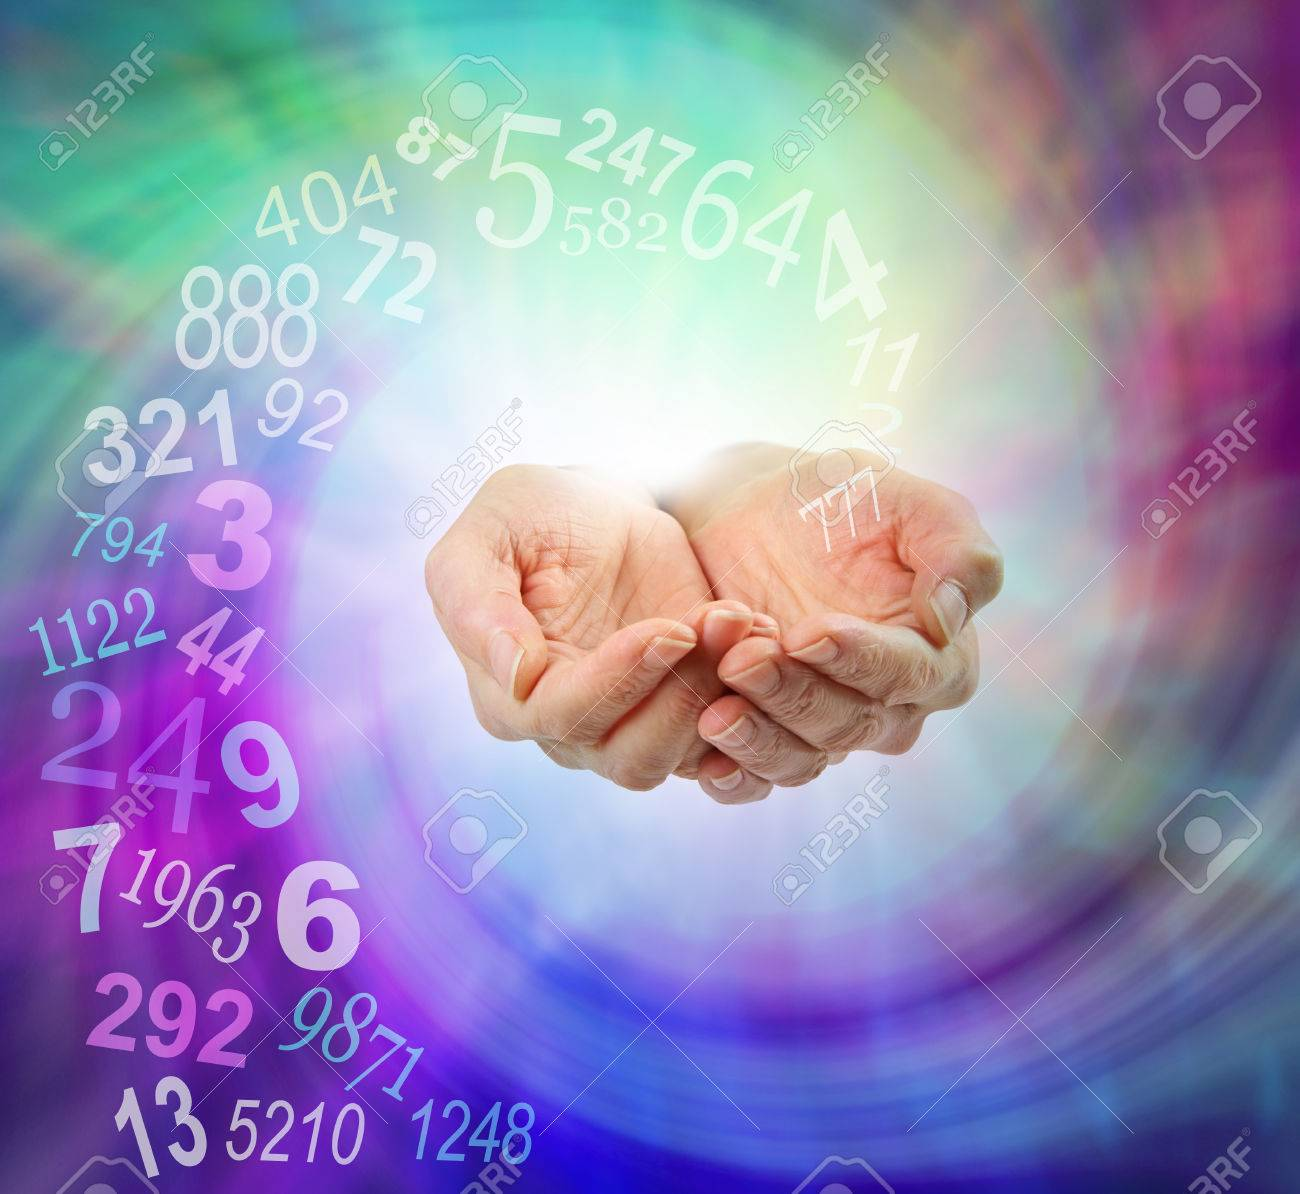 Ask a Numerologist for guidance - female cupped hands emerging from an ethereal multicolored spiraling energy field and a swirl of random numbers coming into her hands with copy space - 56095792